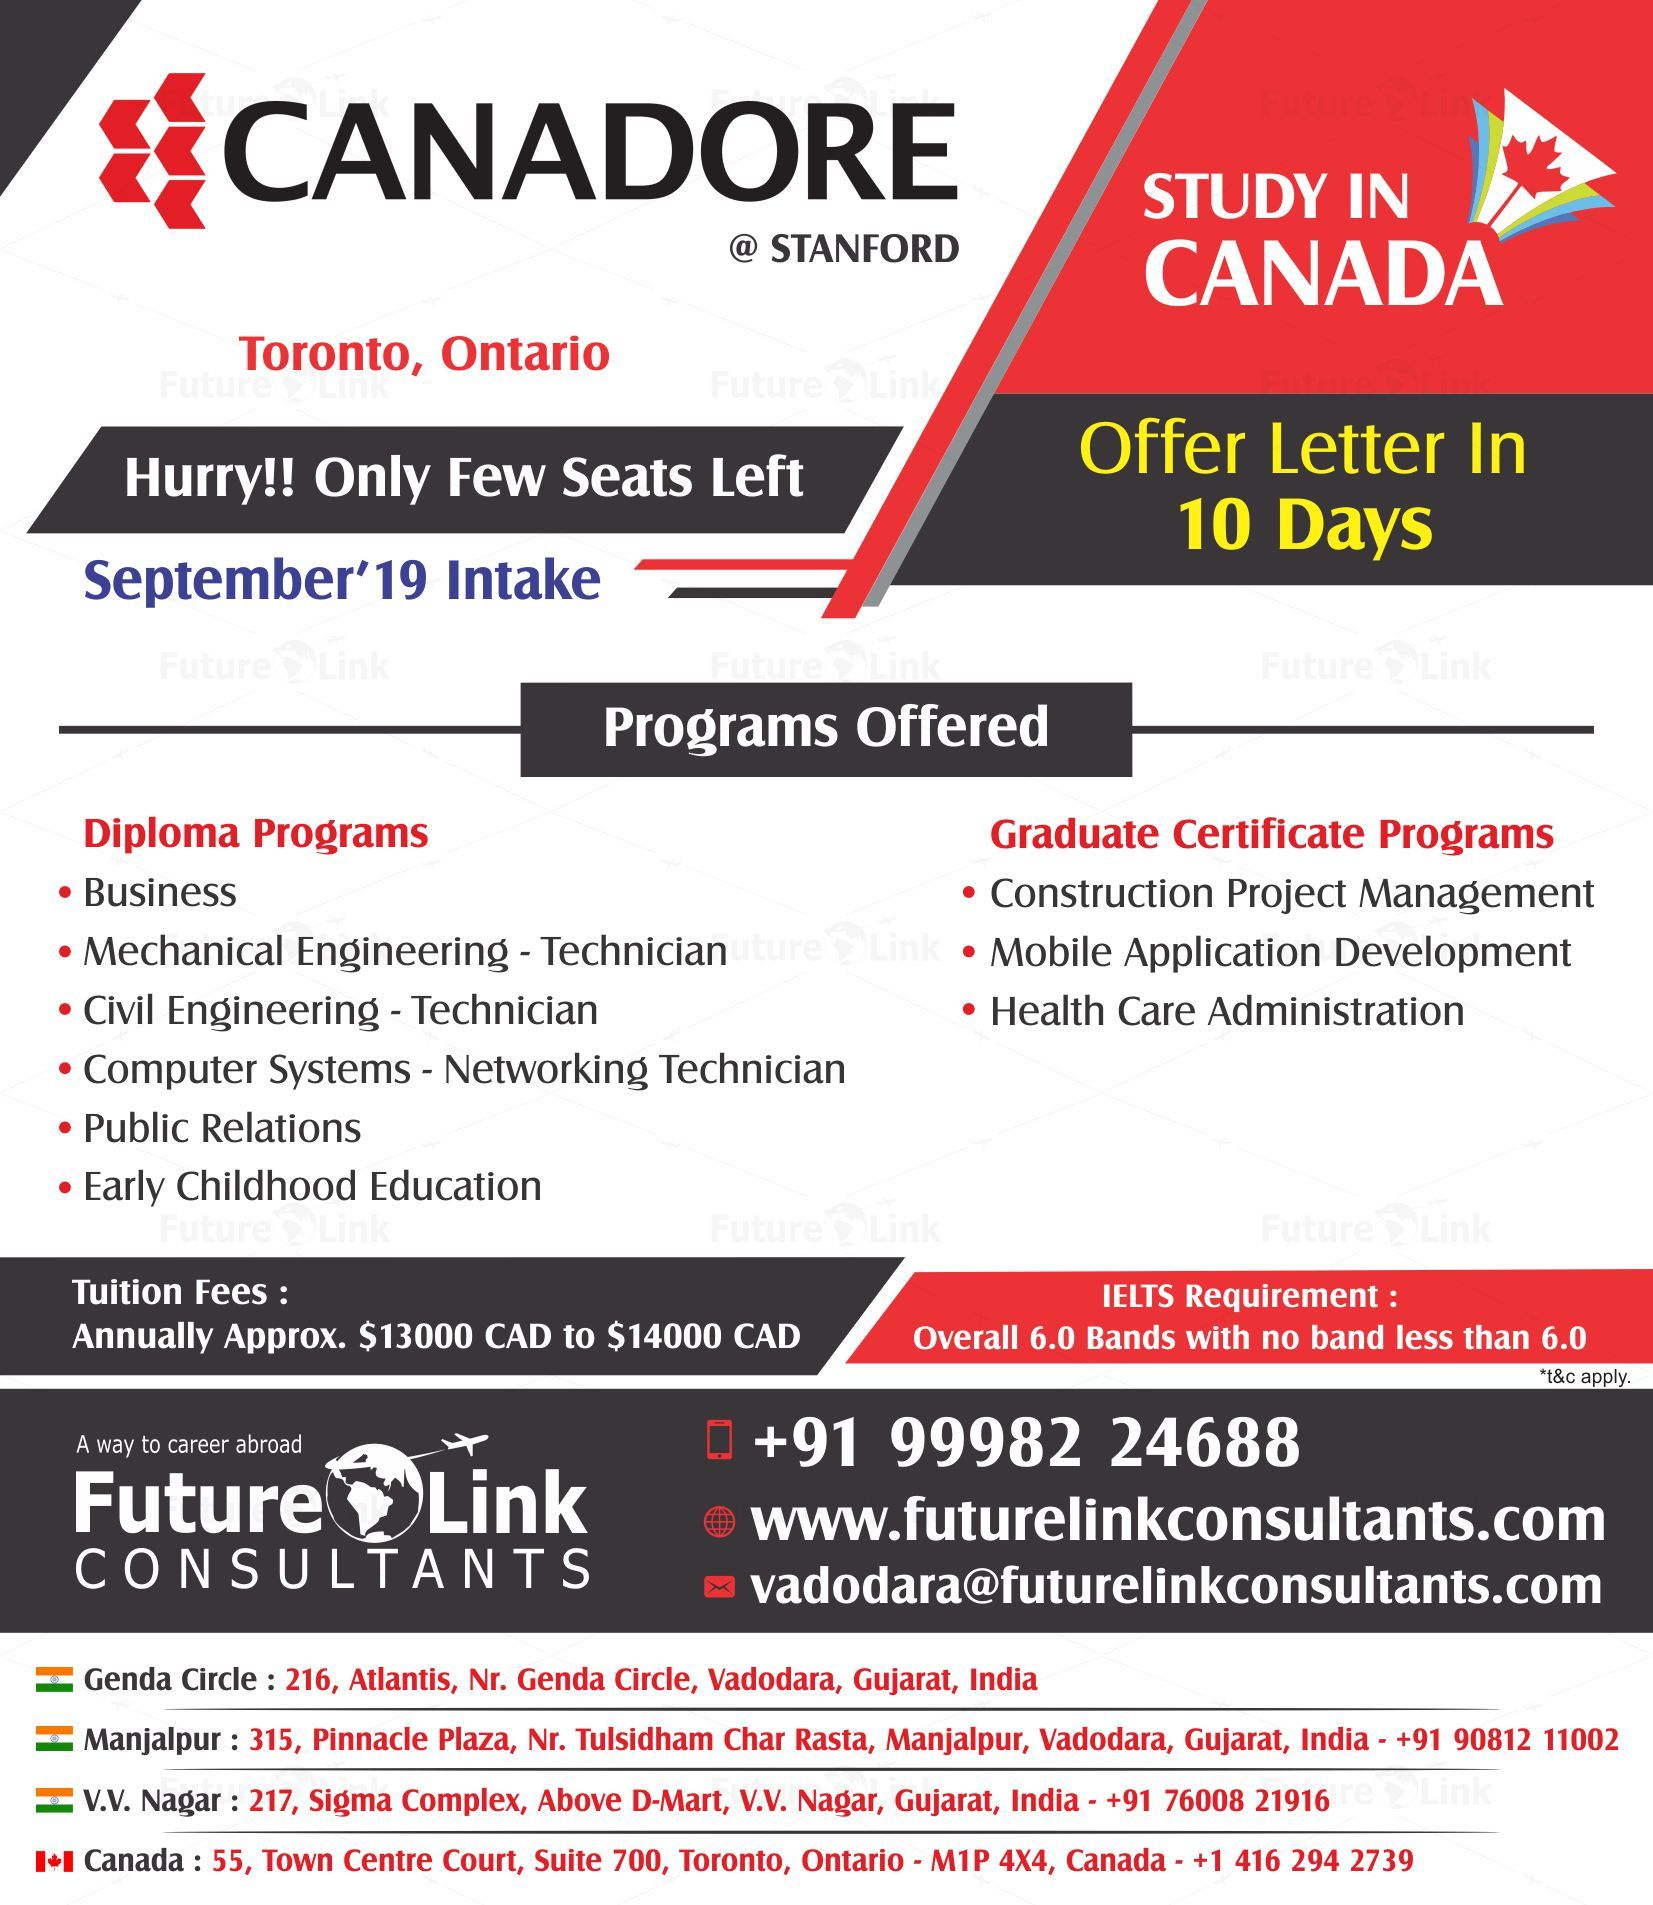 Obtain prolific education by studying in the Canadore College